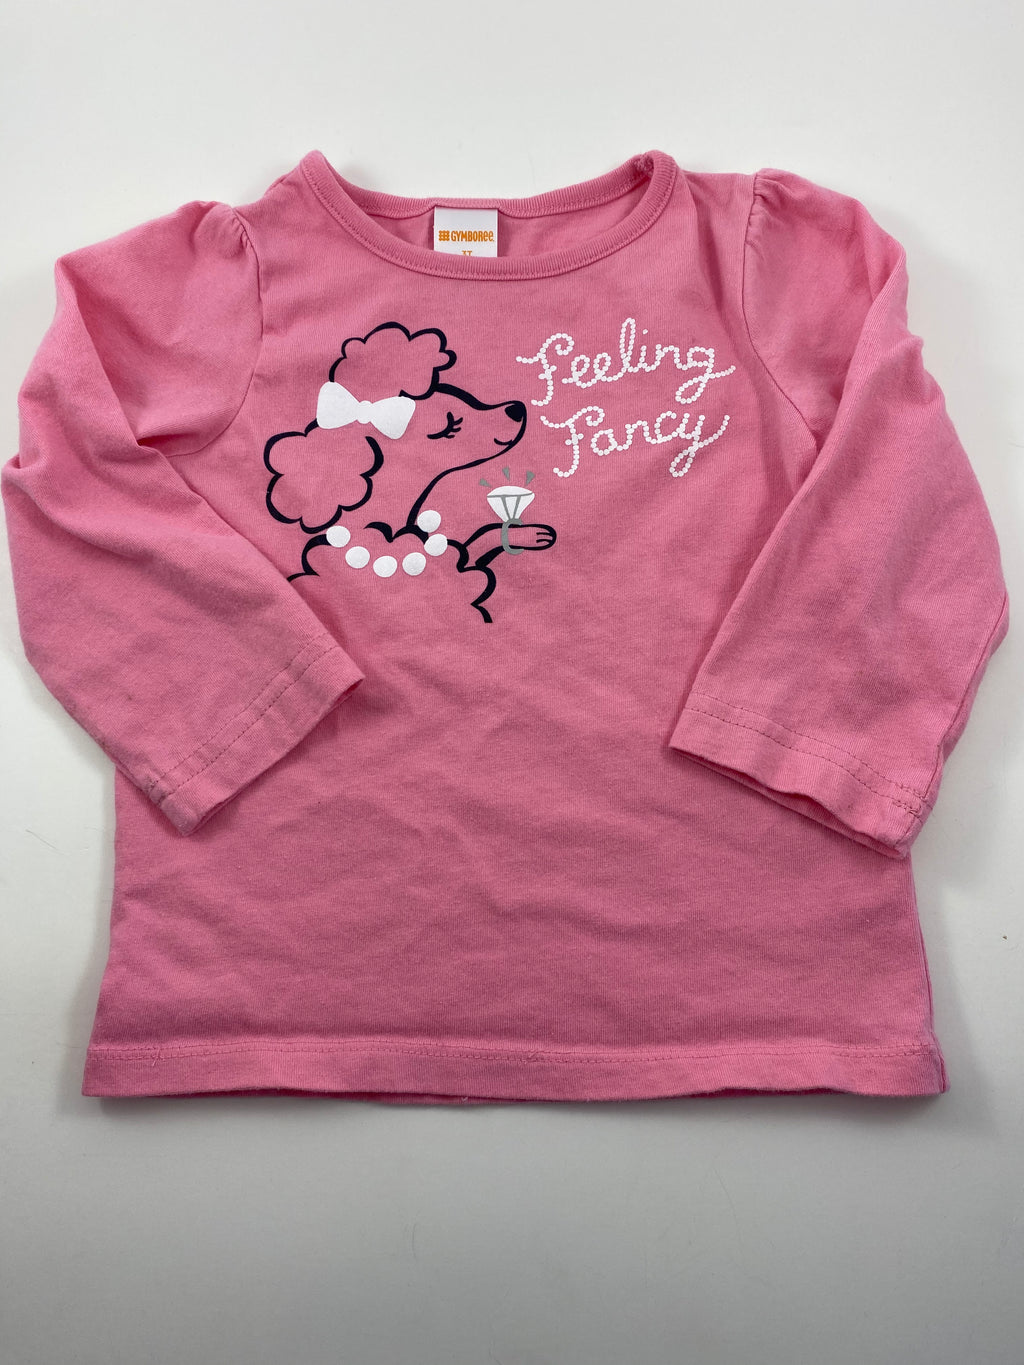 Girl's Long Sleeve Shirt - Size 3t